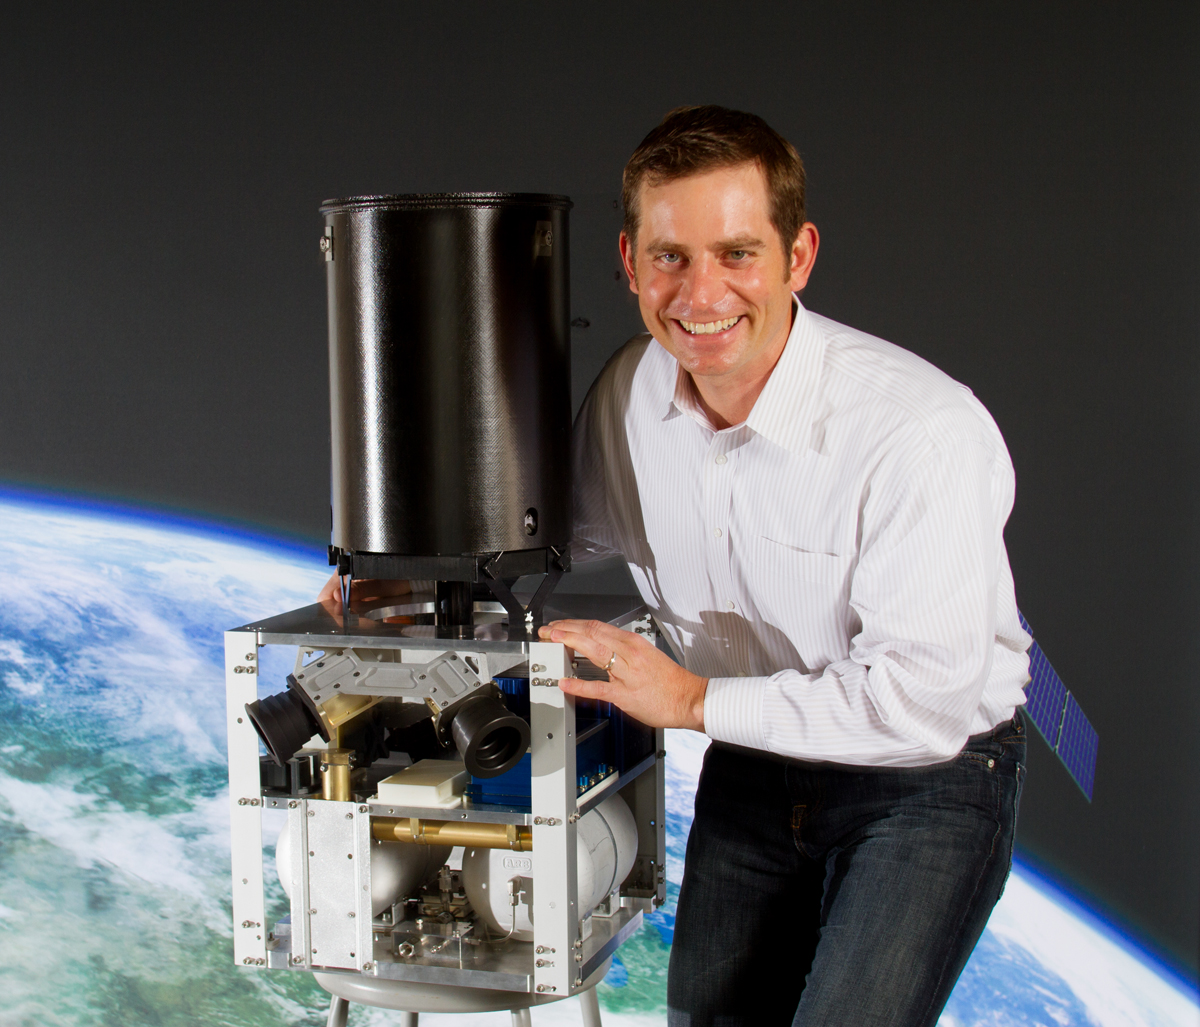 Jason Andrews, CEO of Andrews Space, is photographed next to a full scale model of their  SCOUT commercial imaging space craft. (© copyright Karen Ducey)